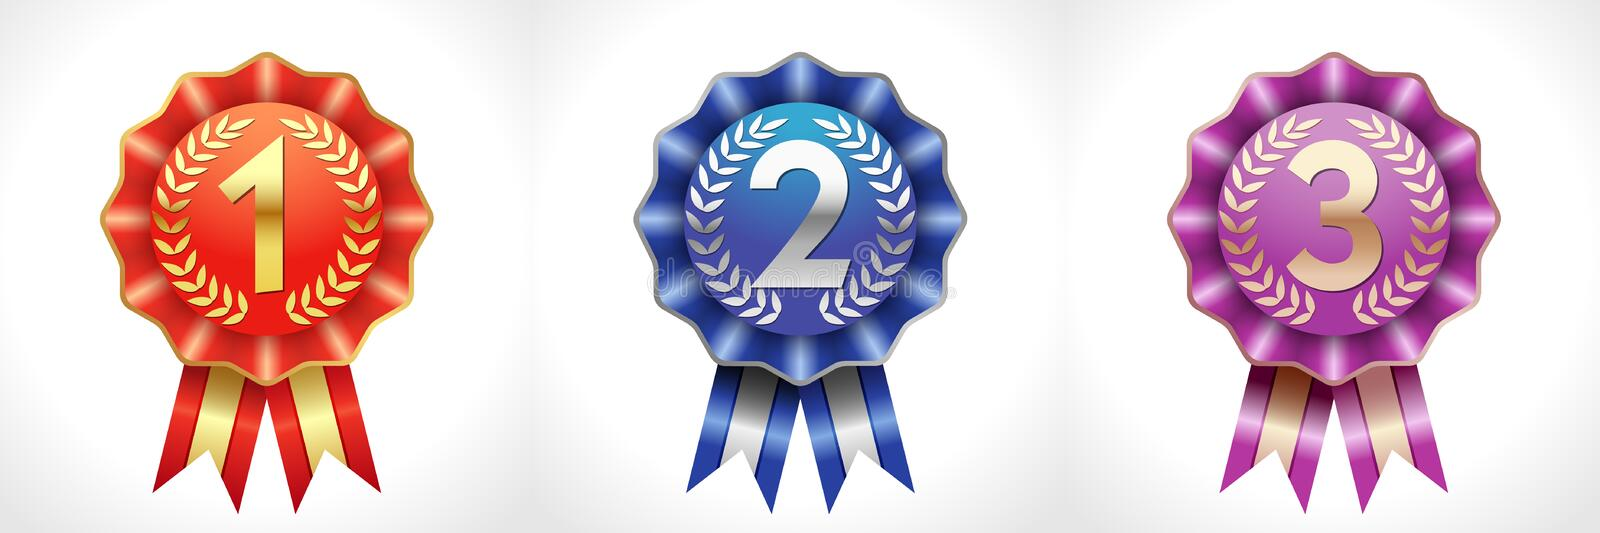 Award colored numbers vector illustration